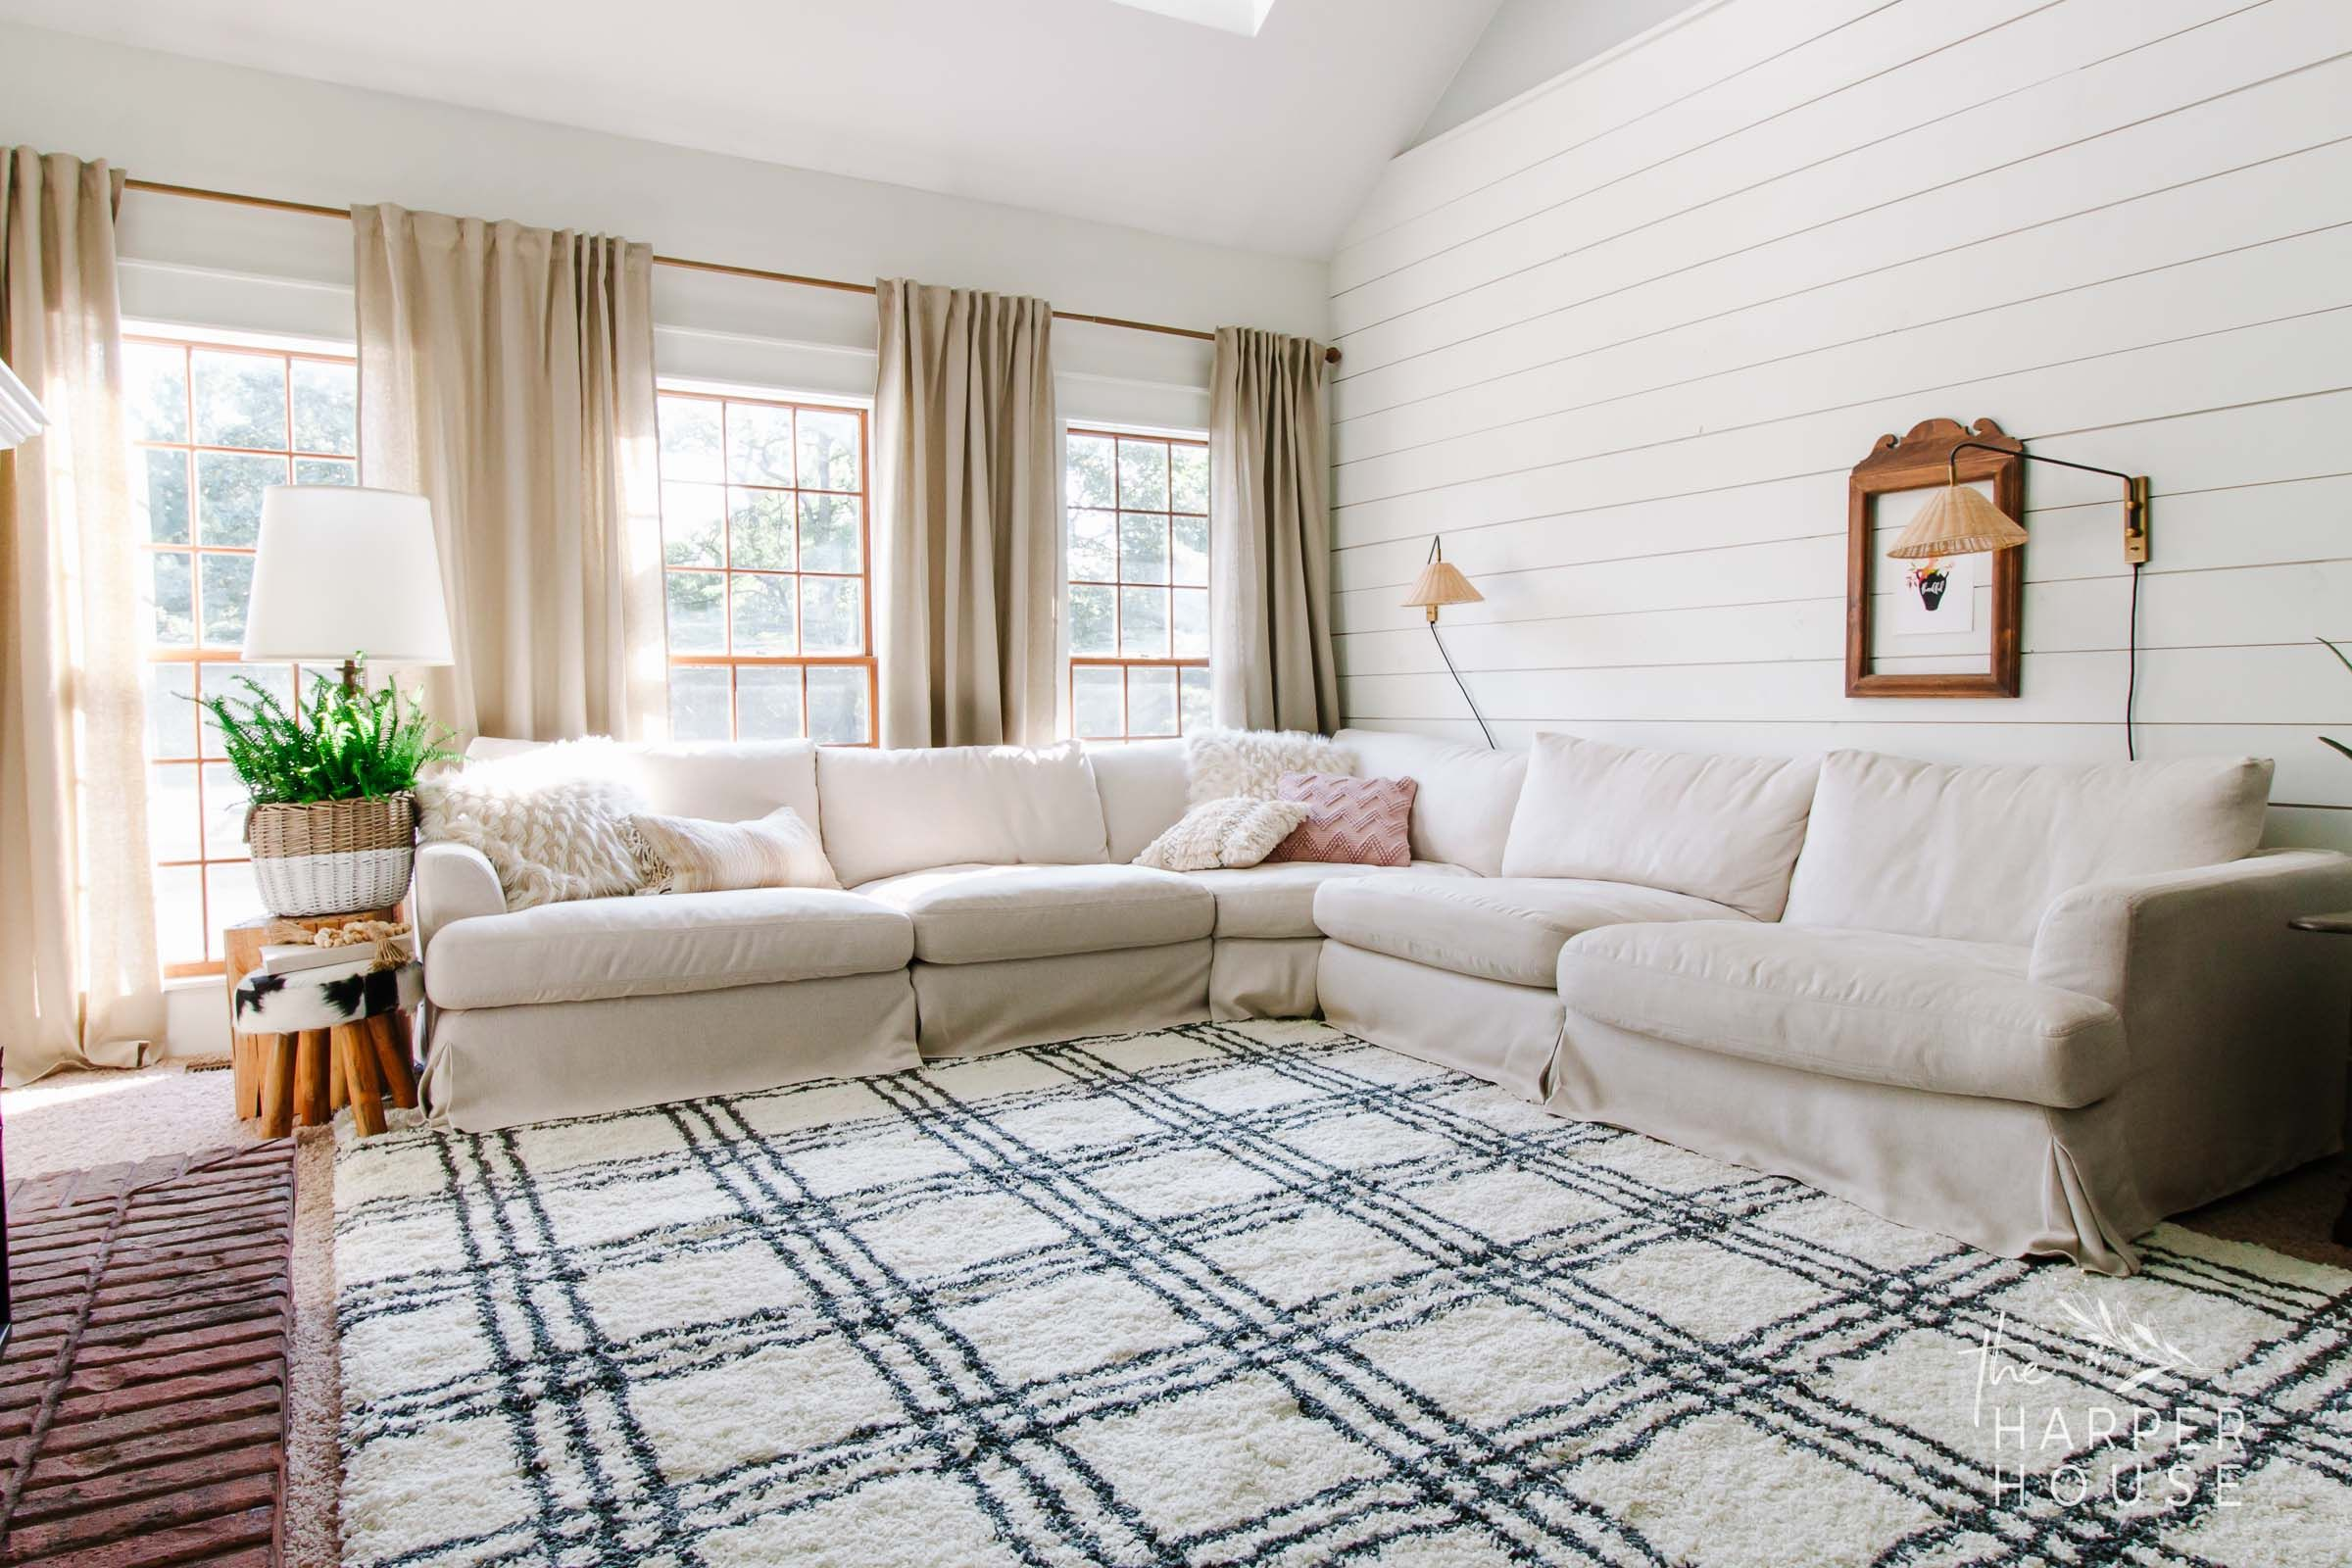 Black White Rug And Affordable Fall Favorites The Harper House Farm House Living Room Rugs In Living Room White Rug Living Room